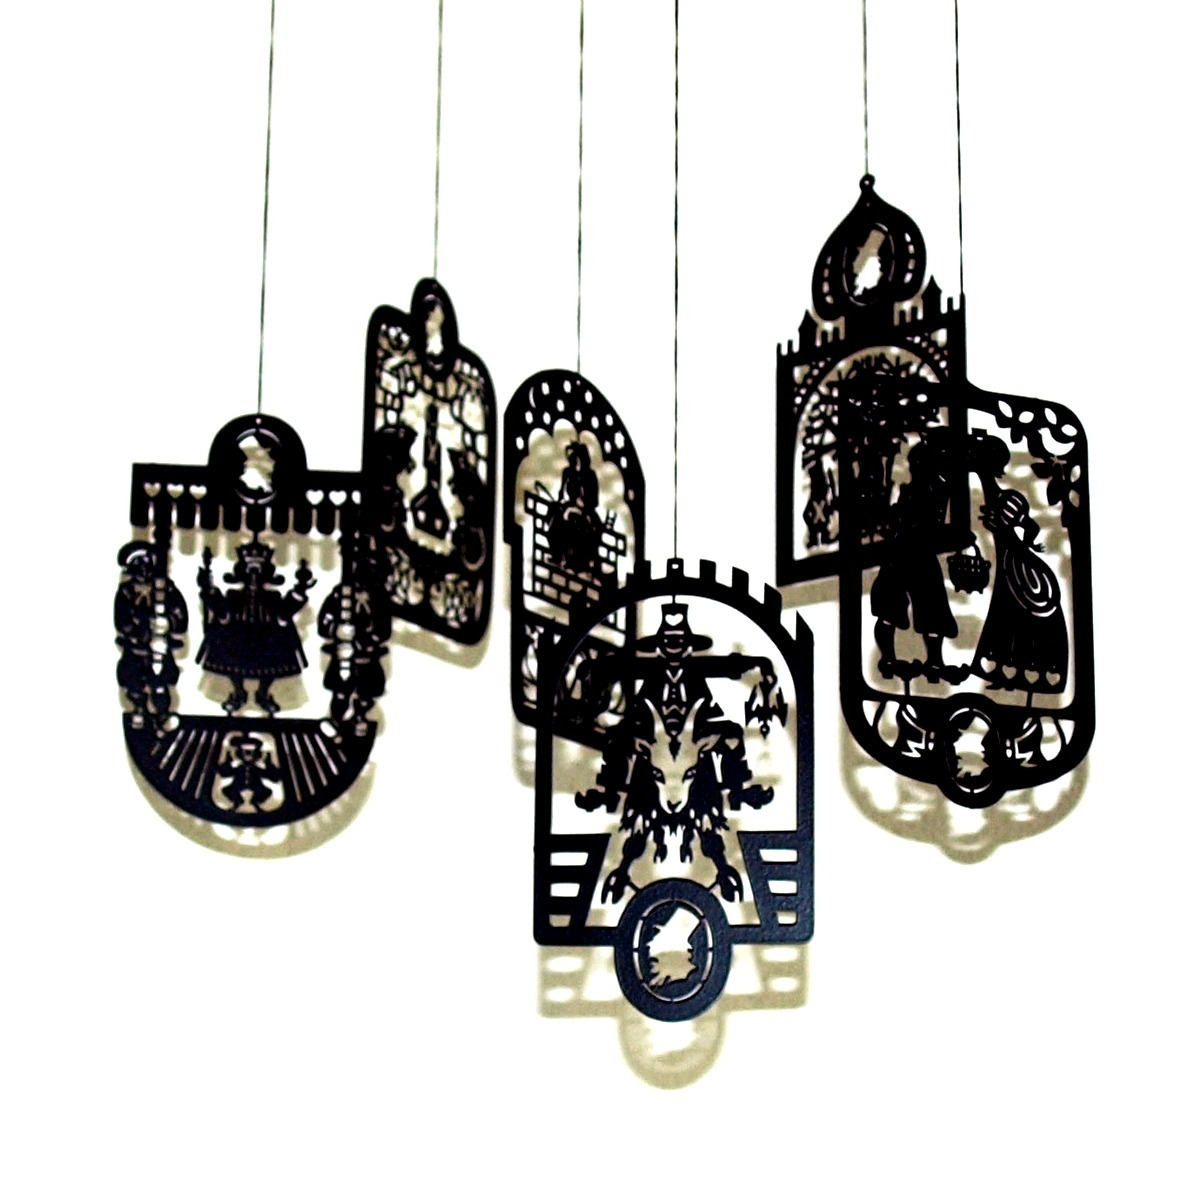 6 Pcs. Hans Christian Andersen's Black Brass Mobile Hangers